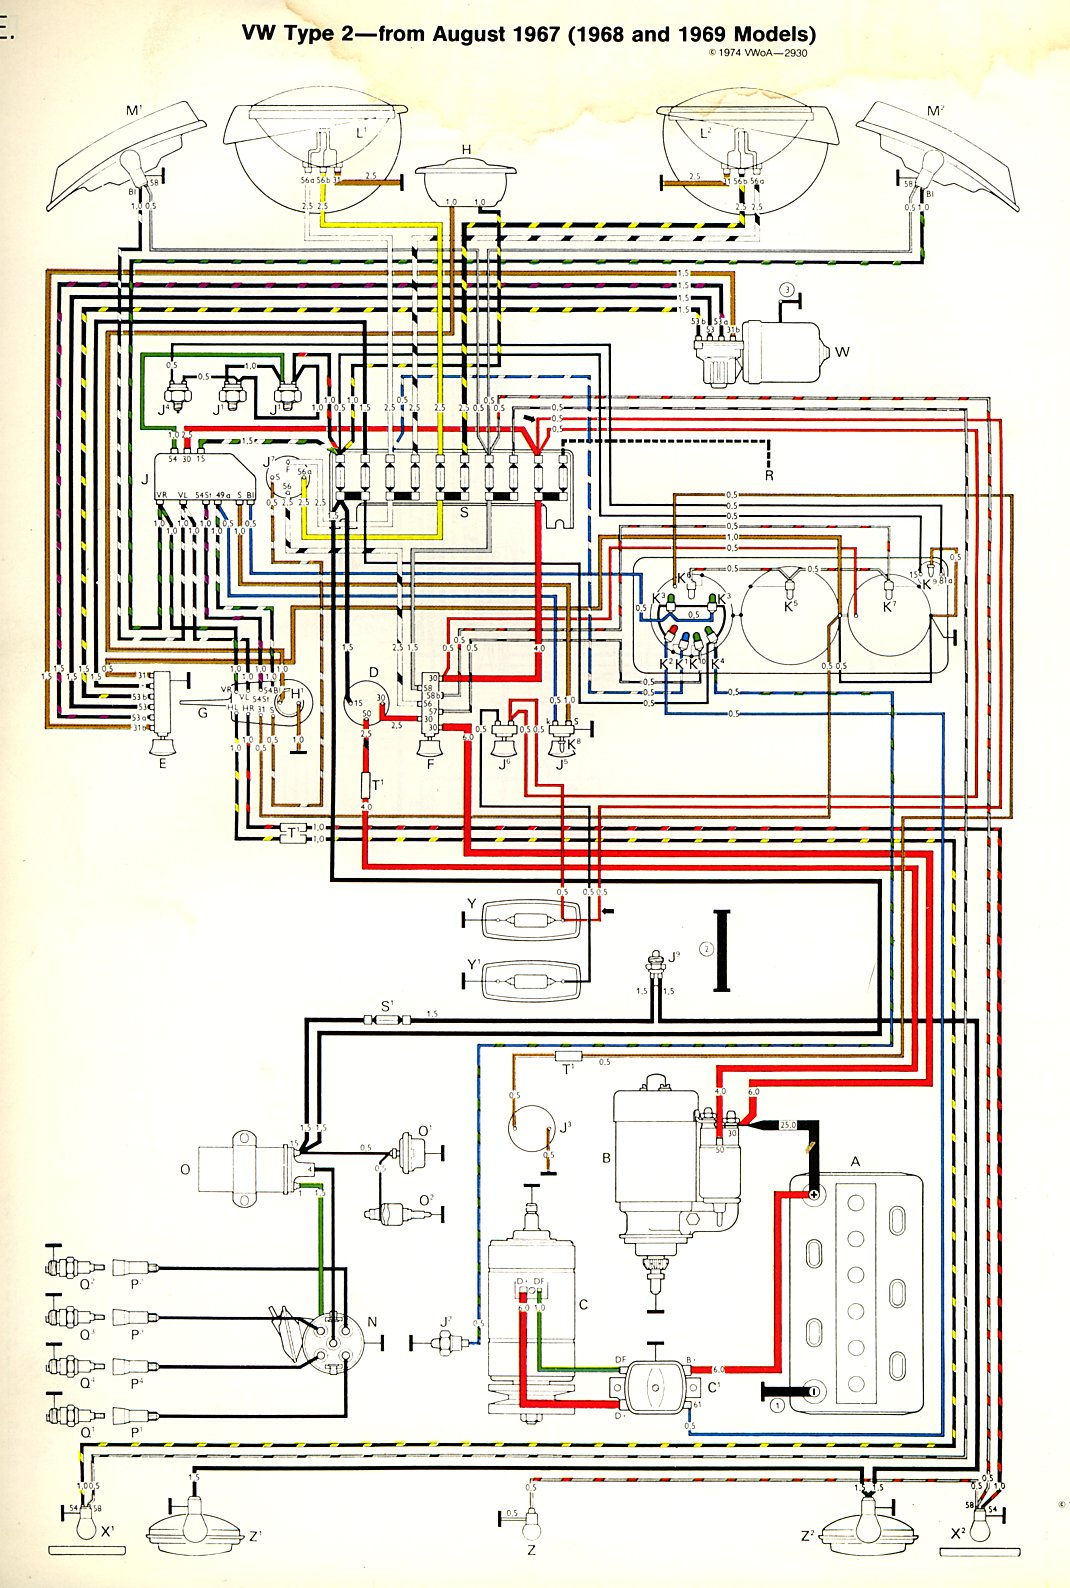 Vw Pickup Fuse Diagram Manual Of Wiring Rabbit Thesamba Com Type 2 Diagrams Rh 1982 Box